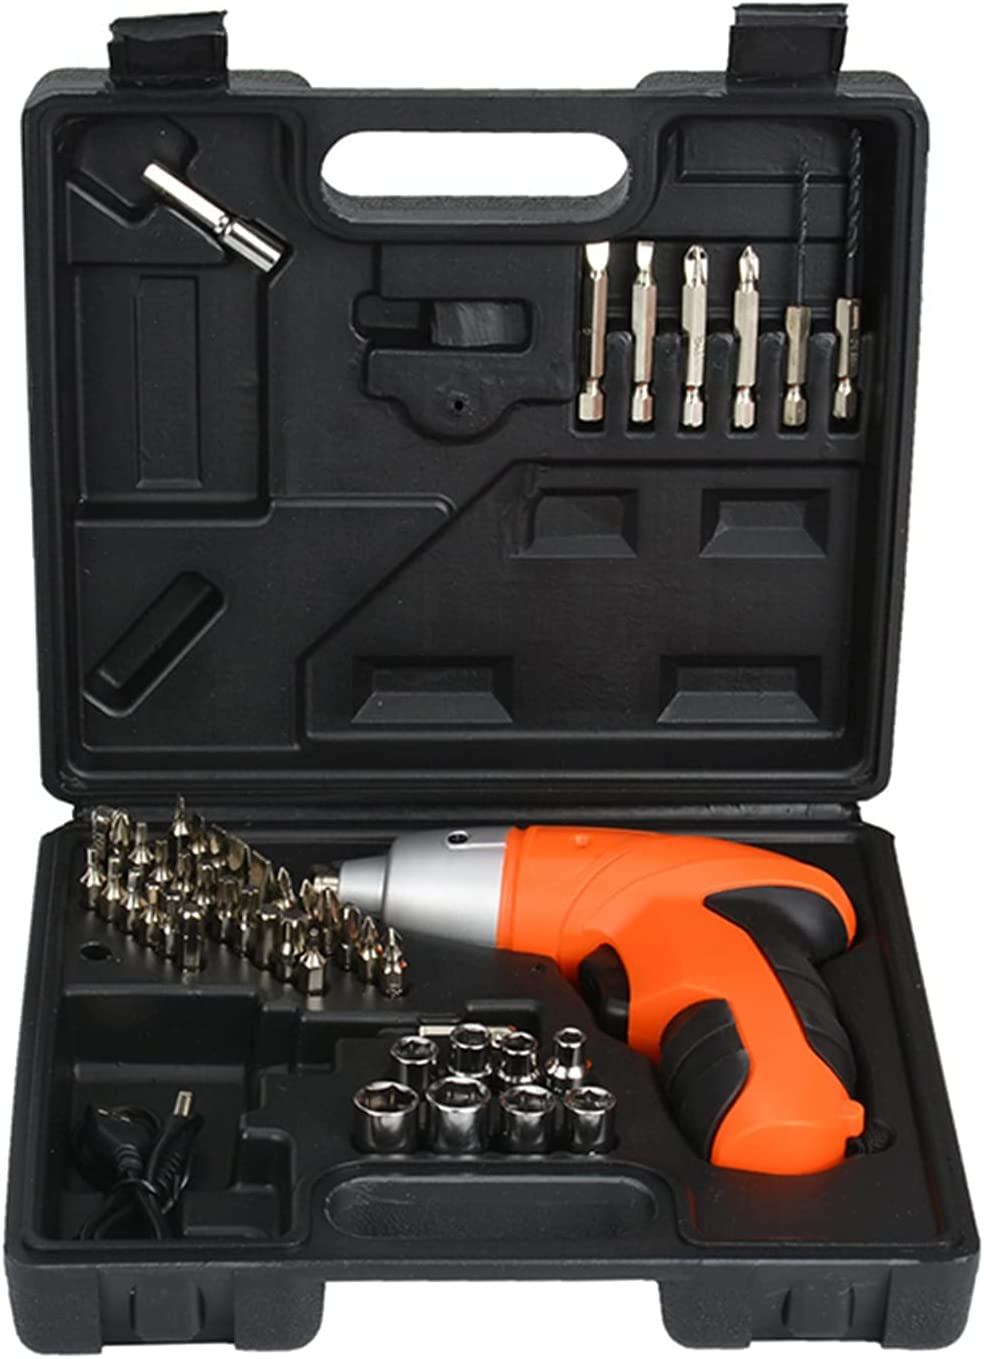 45 in 1 Cordless Screwdriver US Price reduction Set Portable Nippon regular agency Power